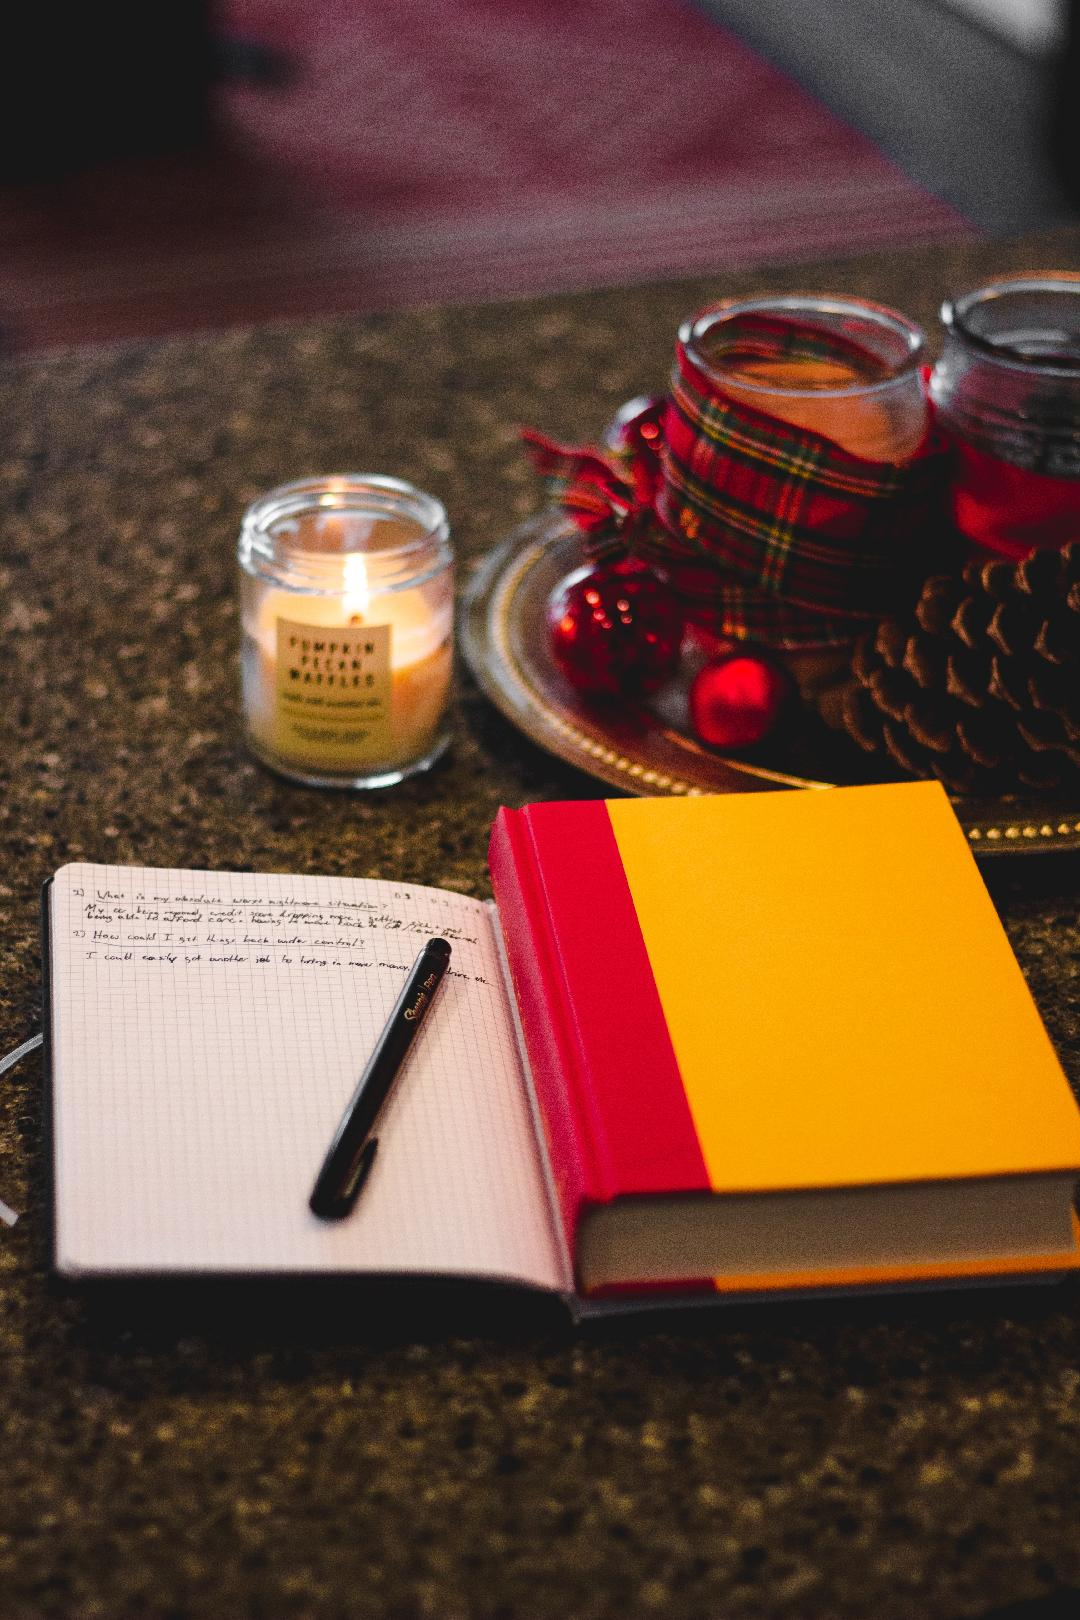 an open journal and pen next to a hardback book and a candle (also, plaid ribbon and red ornament decorations on a silver tray)